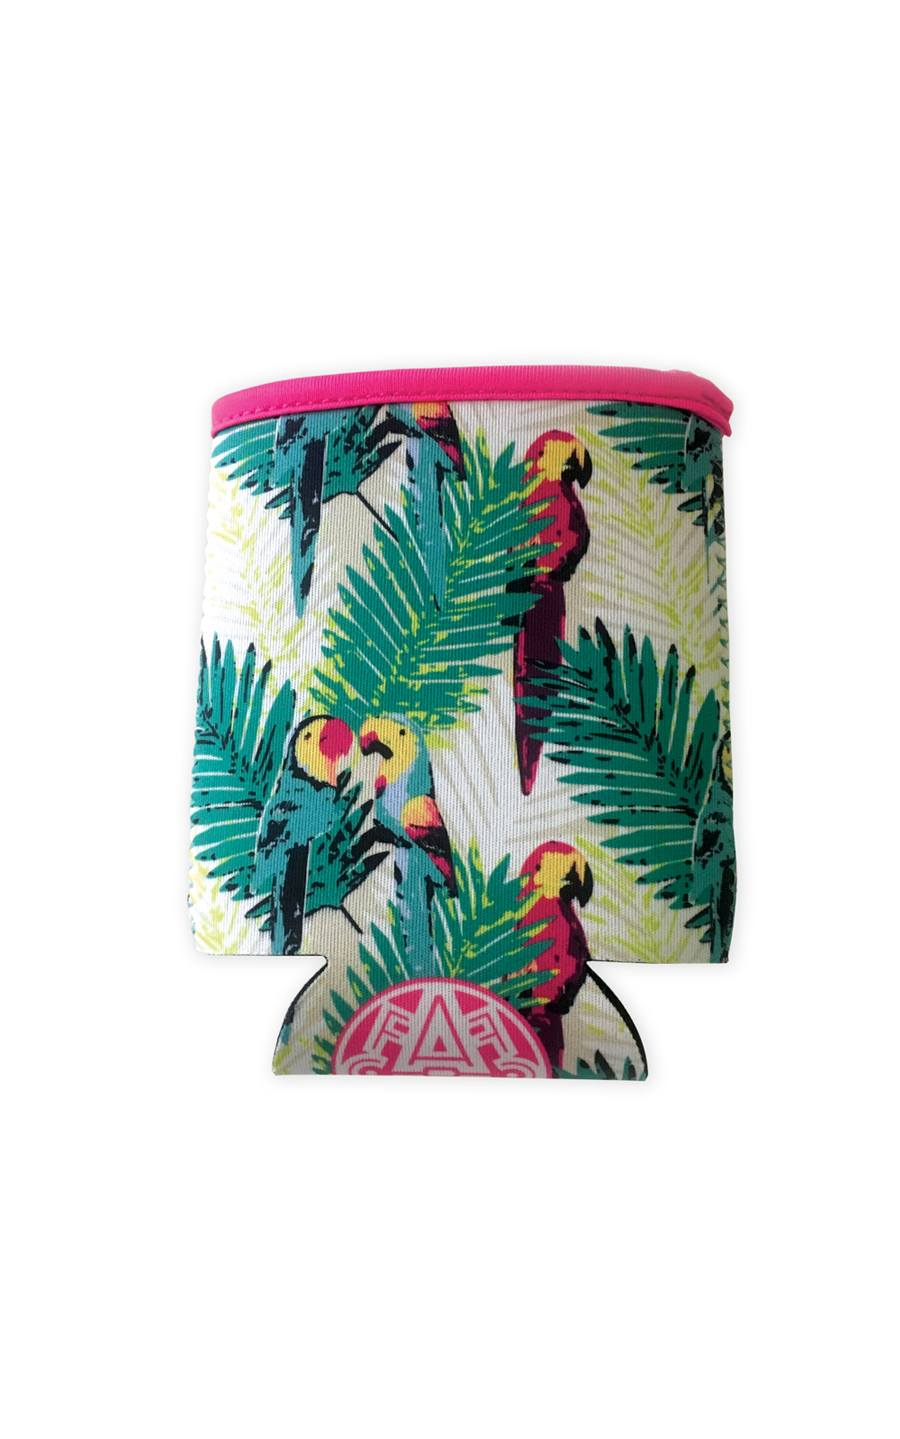 All For Color-Birds of Paradise Can Cooler - FINAL SALE-Can Cooler